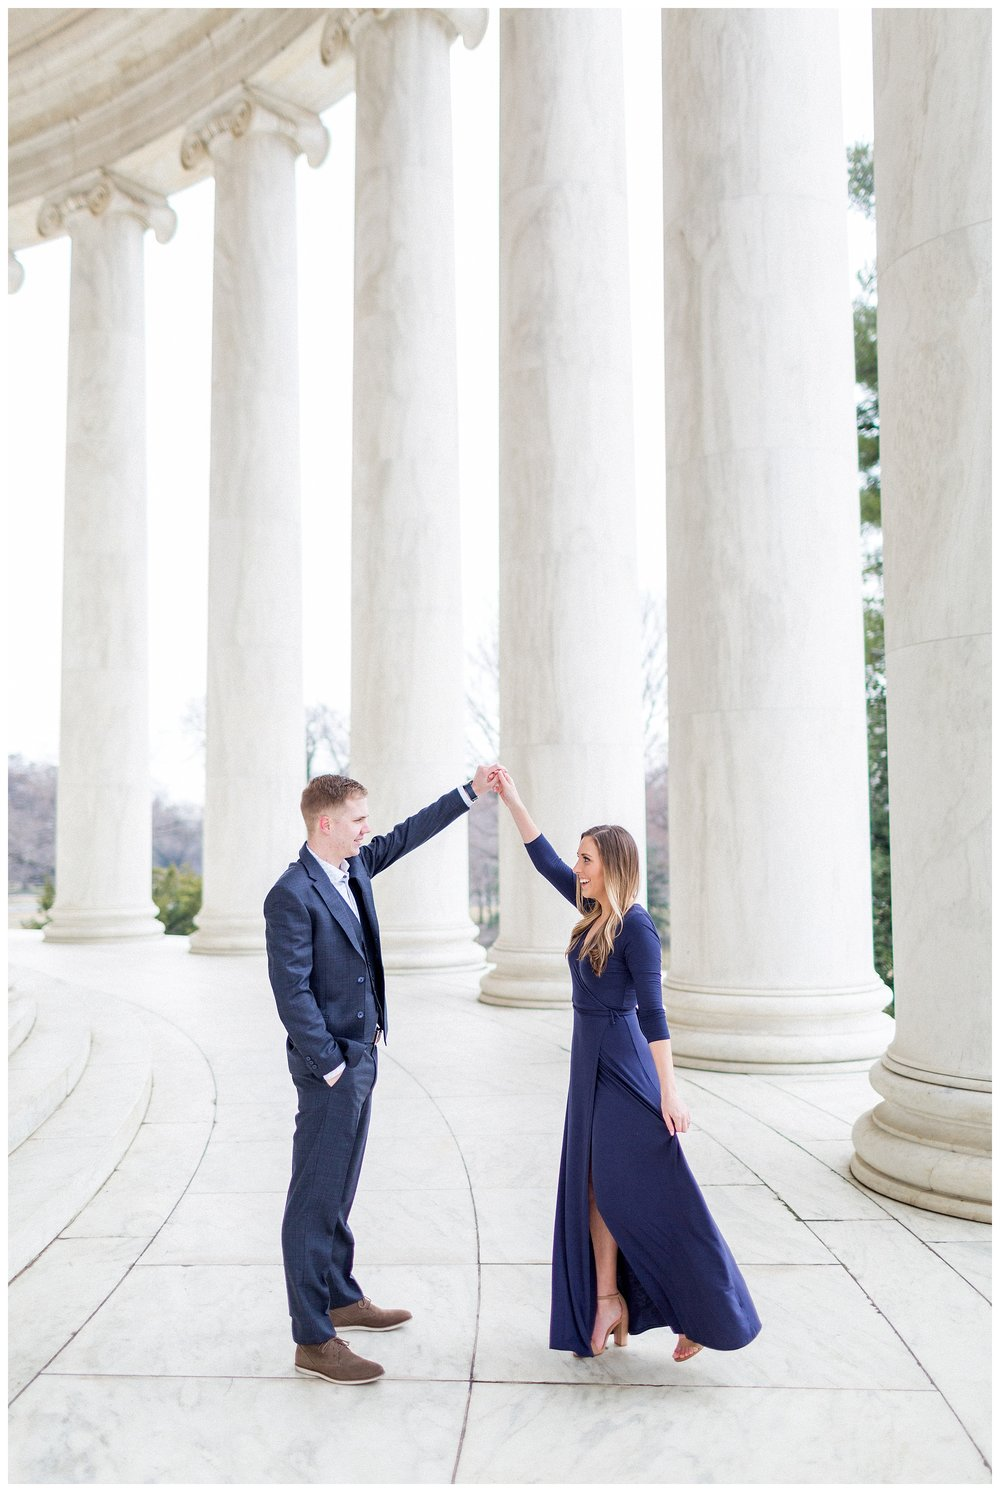 Washingon DC Engagement Photos | Jefferson Memorial Engagement | Kir Tuben_0030.jpg